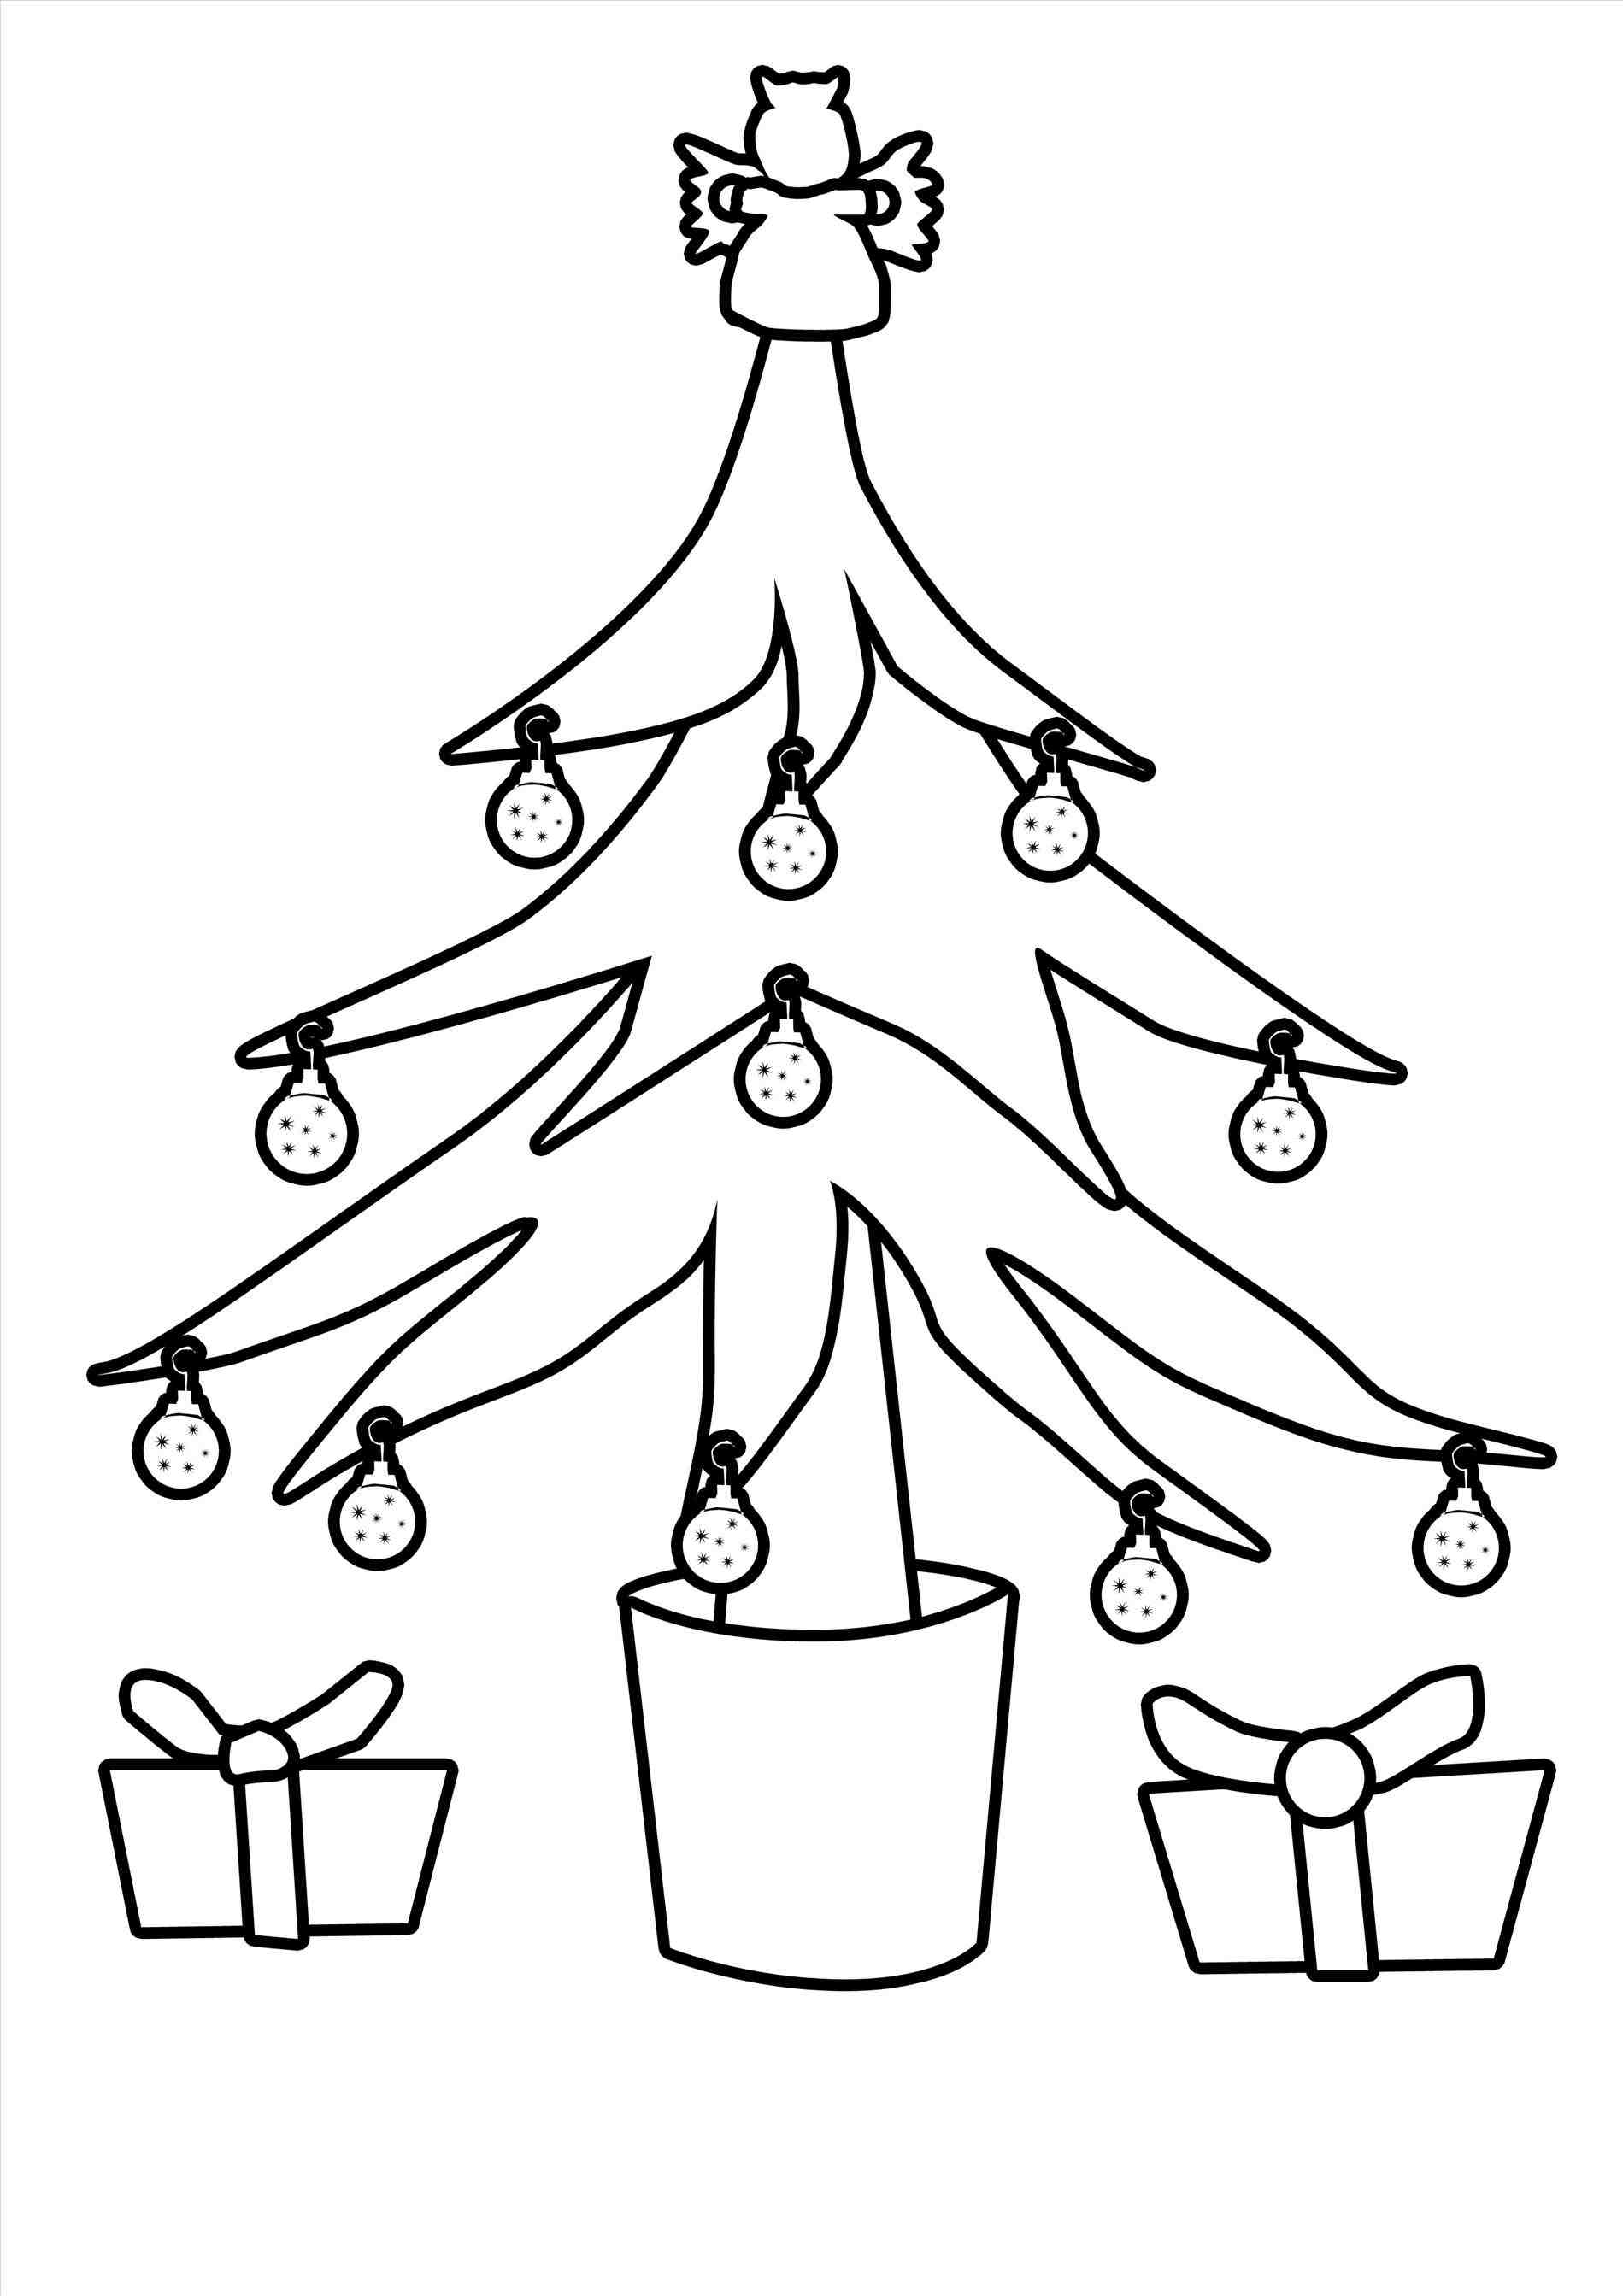 diamond coloring page - jumbo christmas lights coloring pages